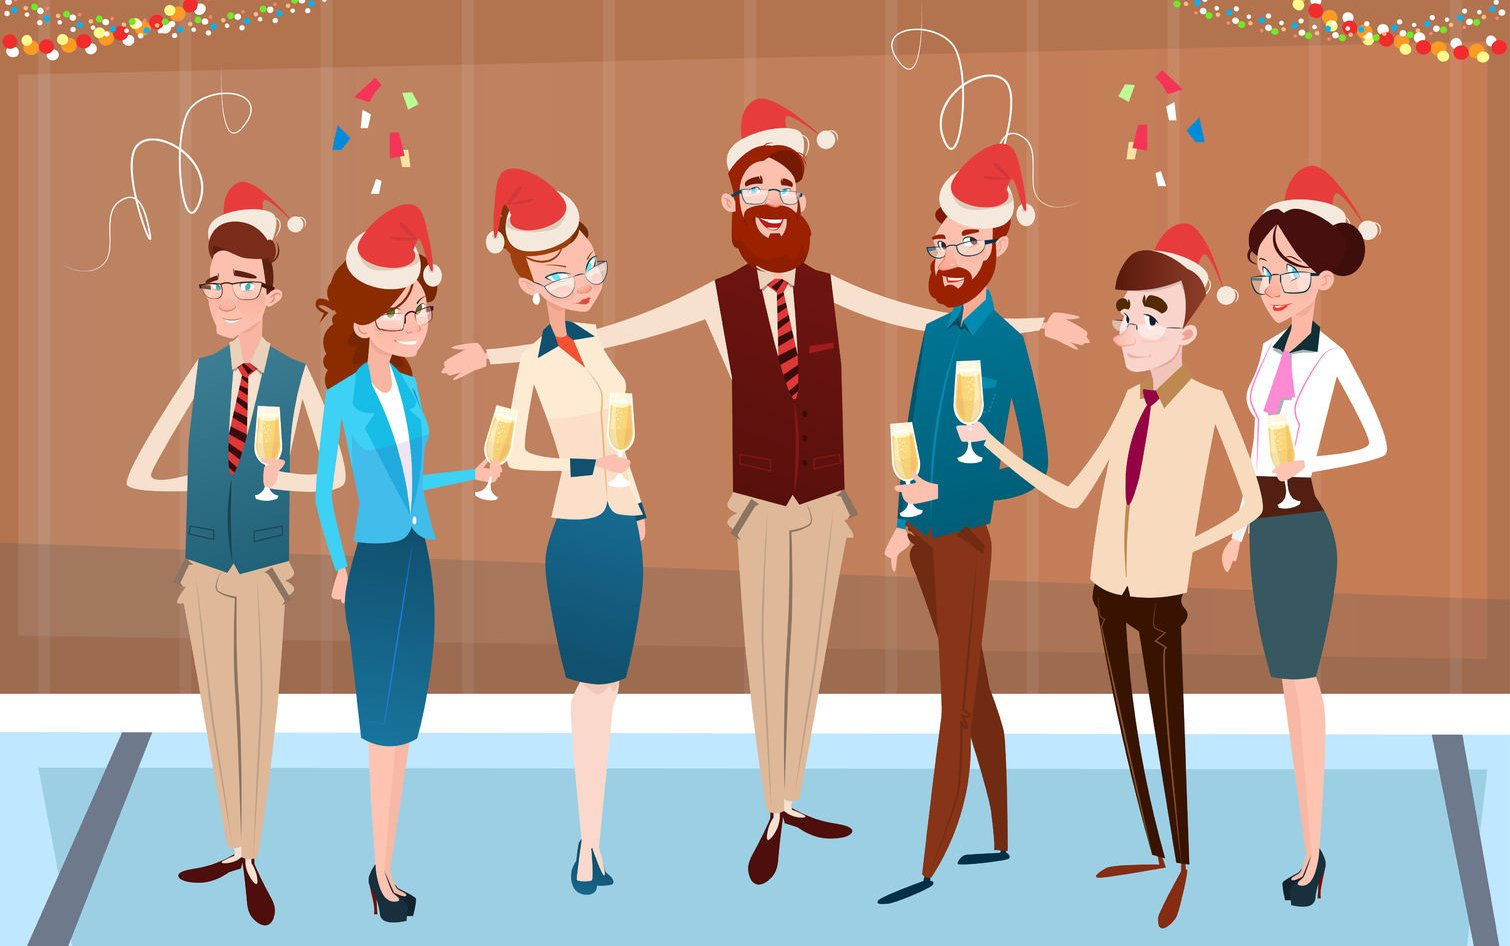 64242364 - businesspeople celebrate merry christmas and happy new year office business people team santa hat flat vector illustration